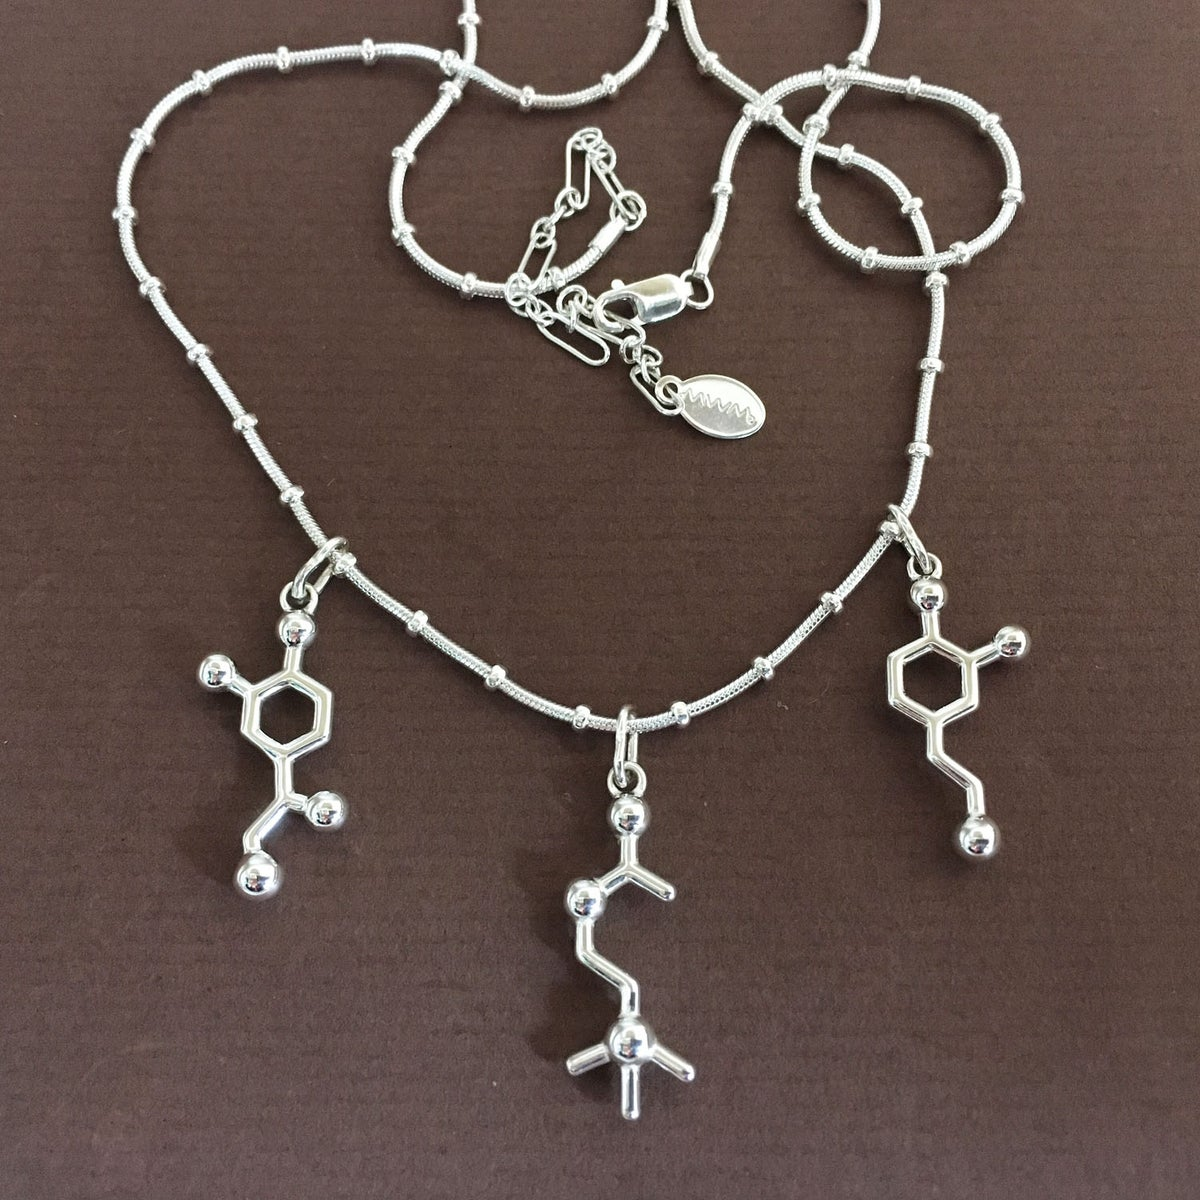 Image of focus necklace